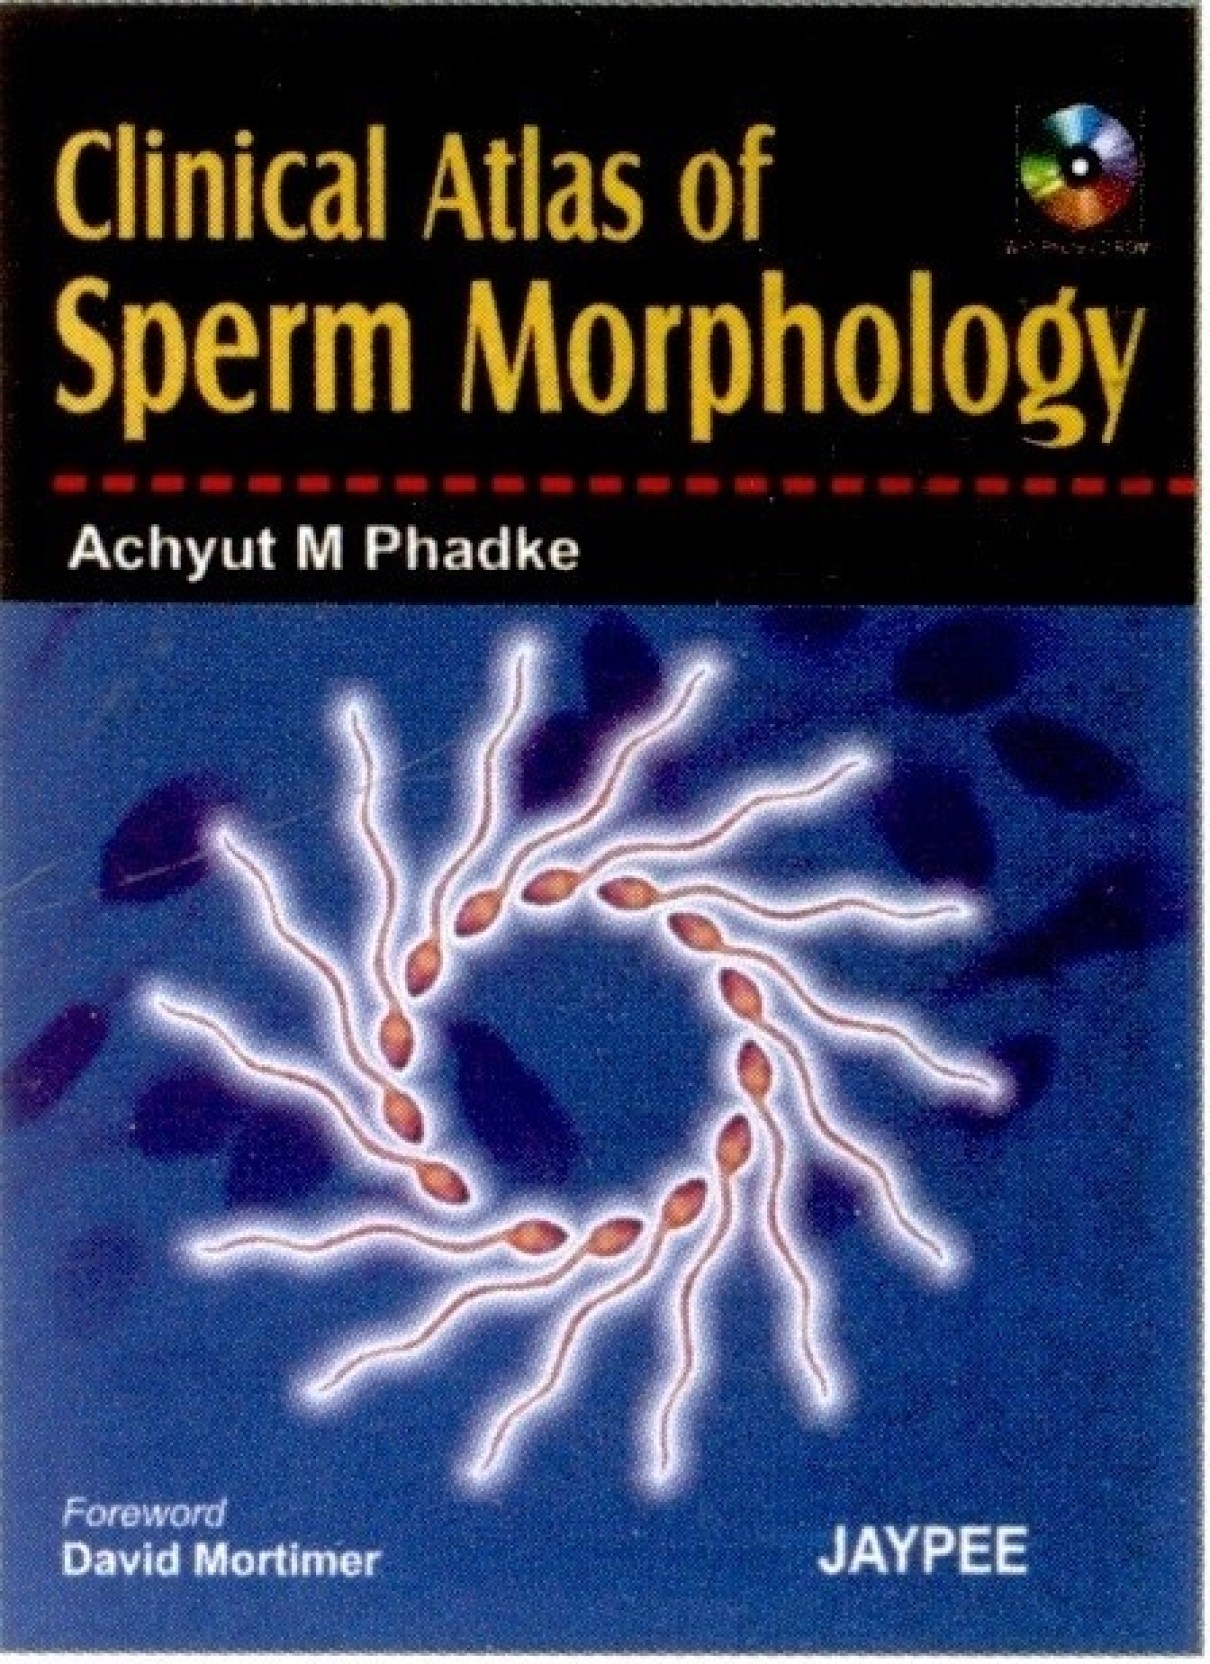 Clinical Atals of Sperm Morphology (with Photo CD Rom)